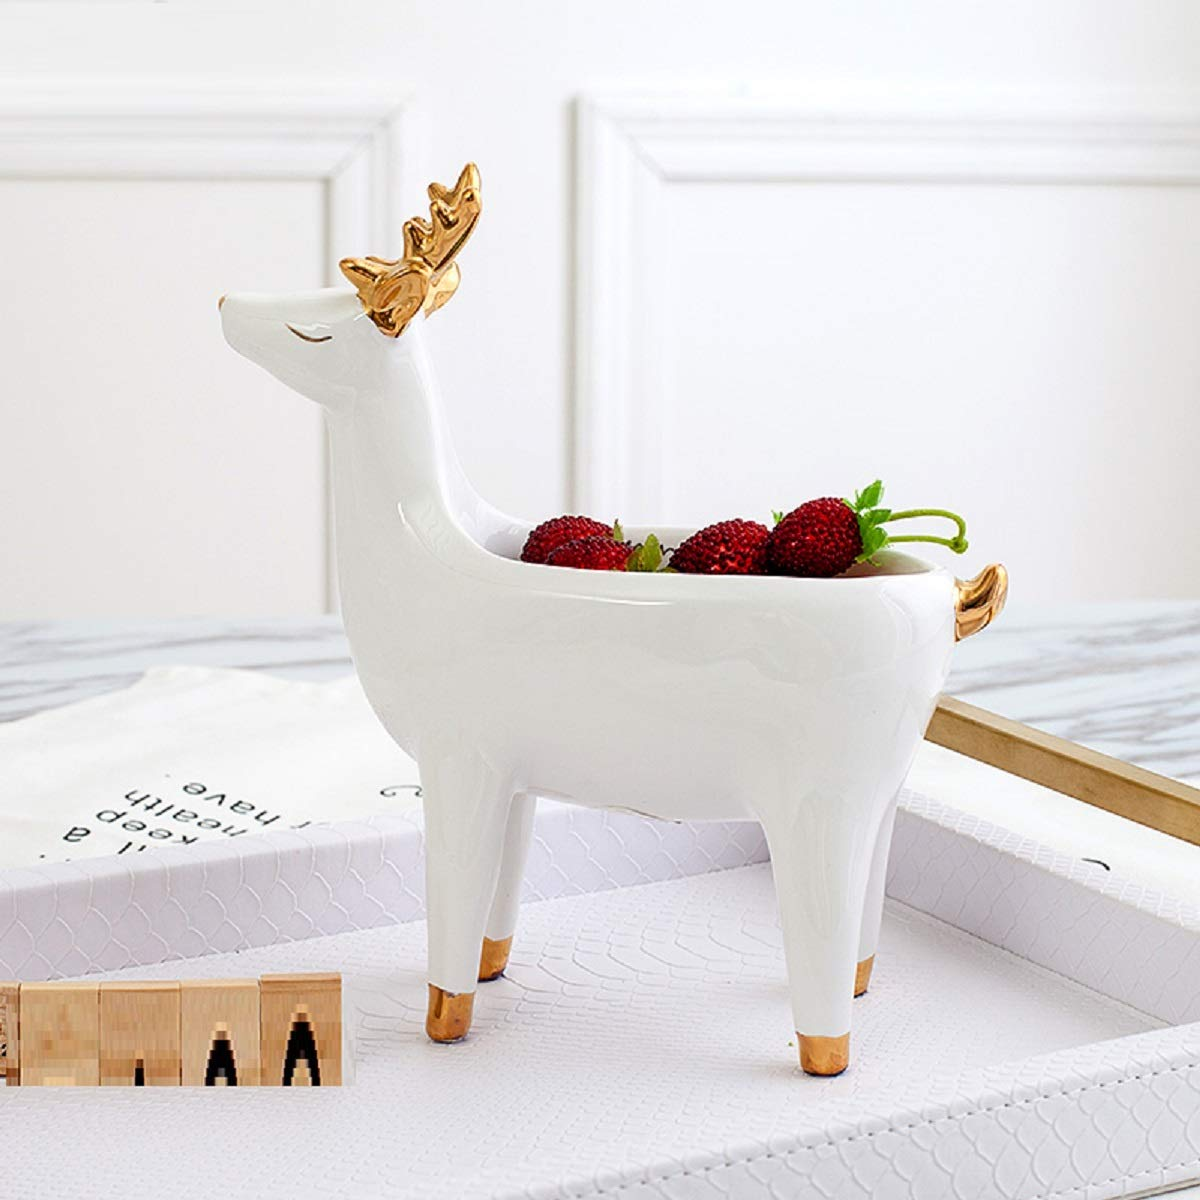 JUIANG Small Deer Storage Box Ceramic Nordic Animal Shape Porch Key Candy Dish Dried Fruit Plate Creative Living Room Debris Storage Ornaments